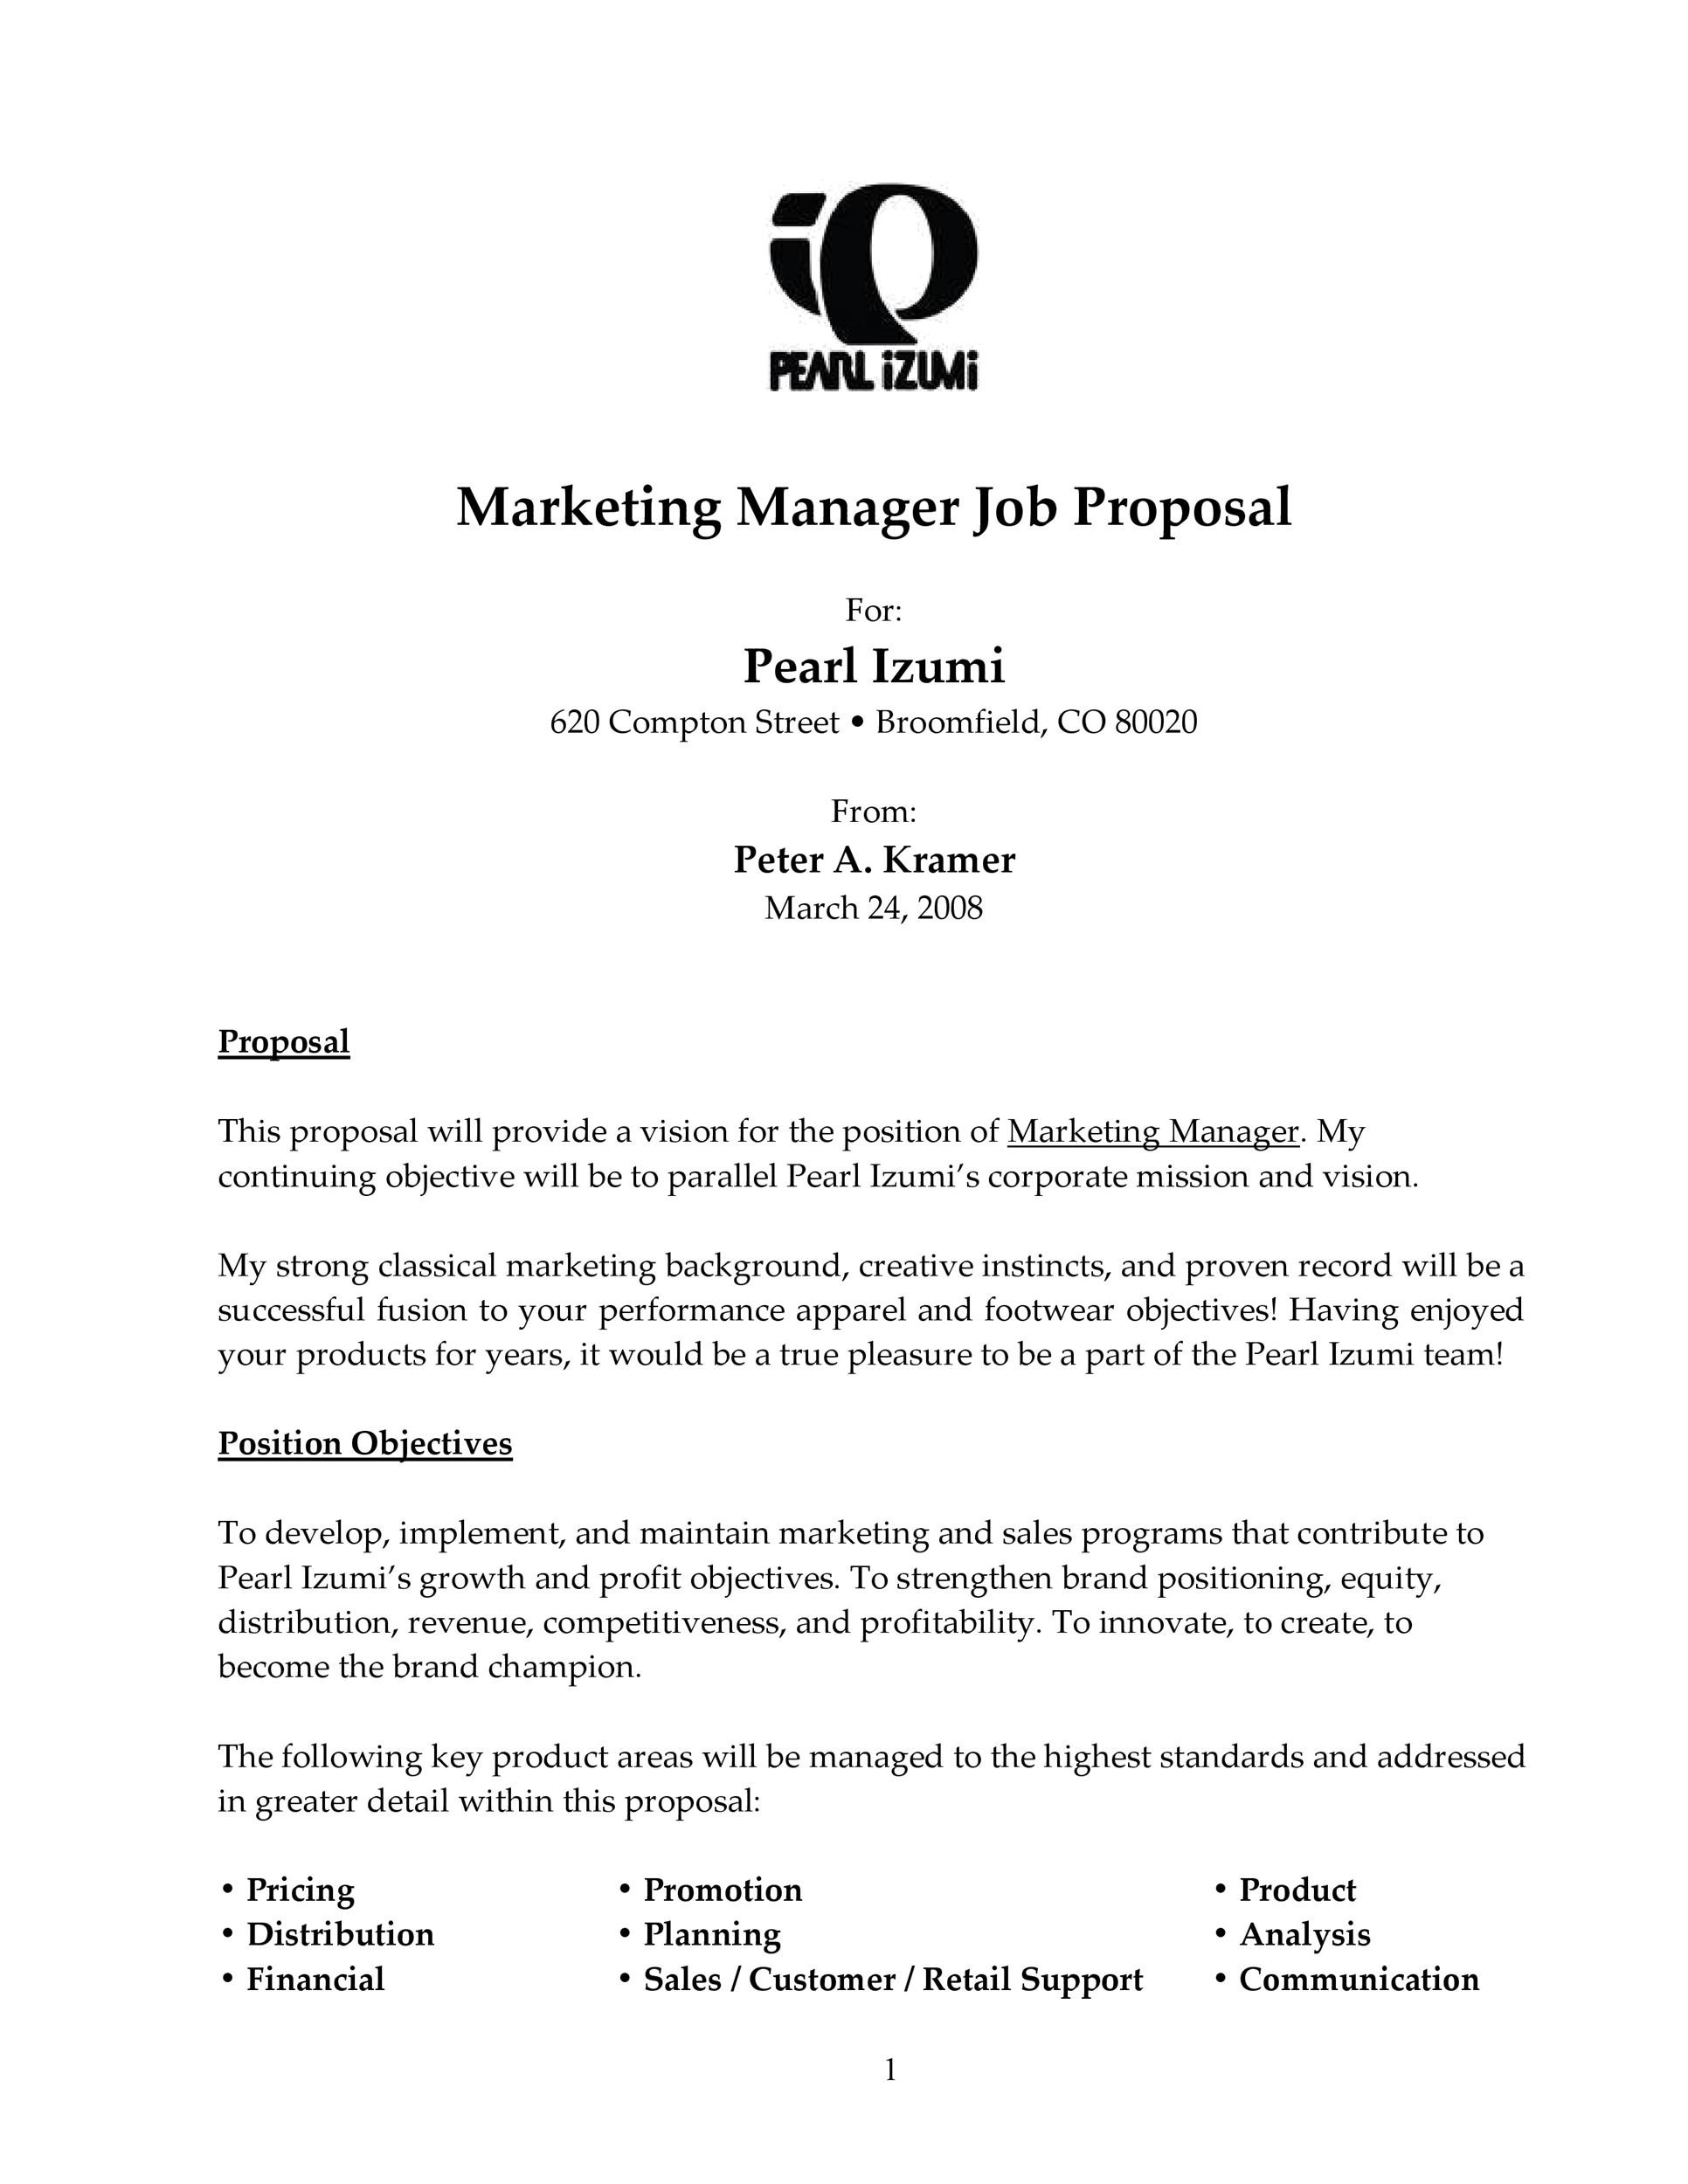 Free Job Proposal Template 16